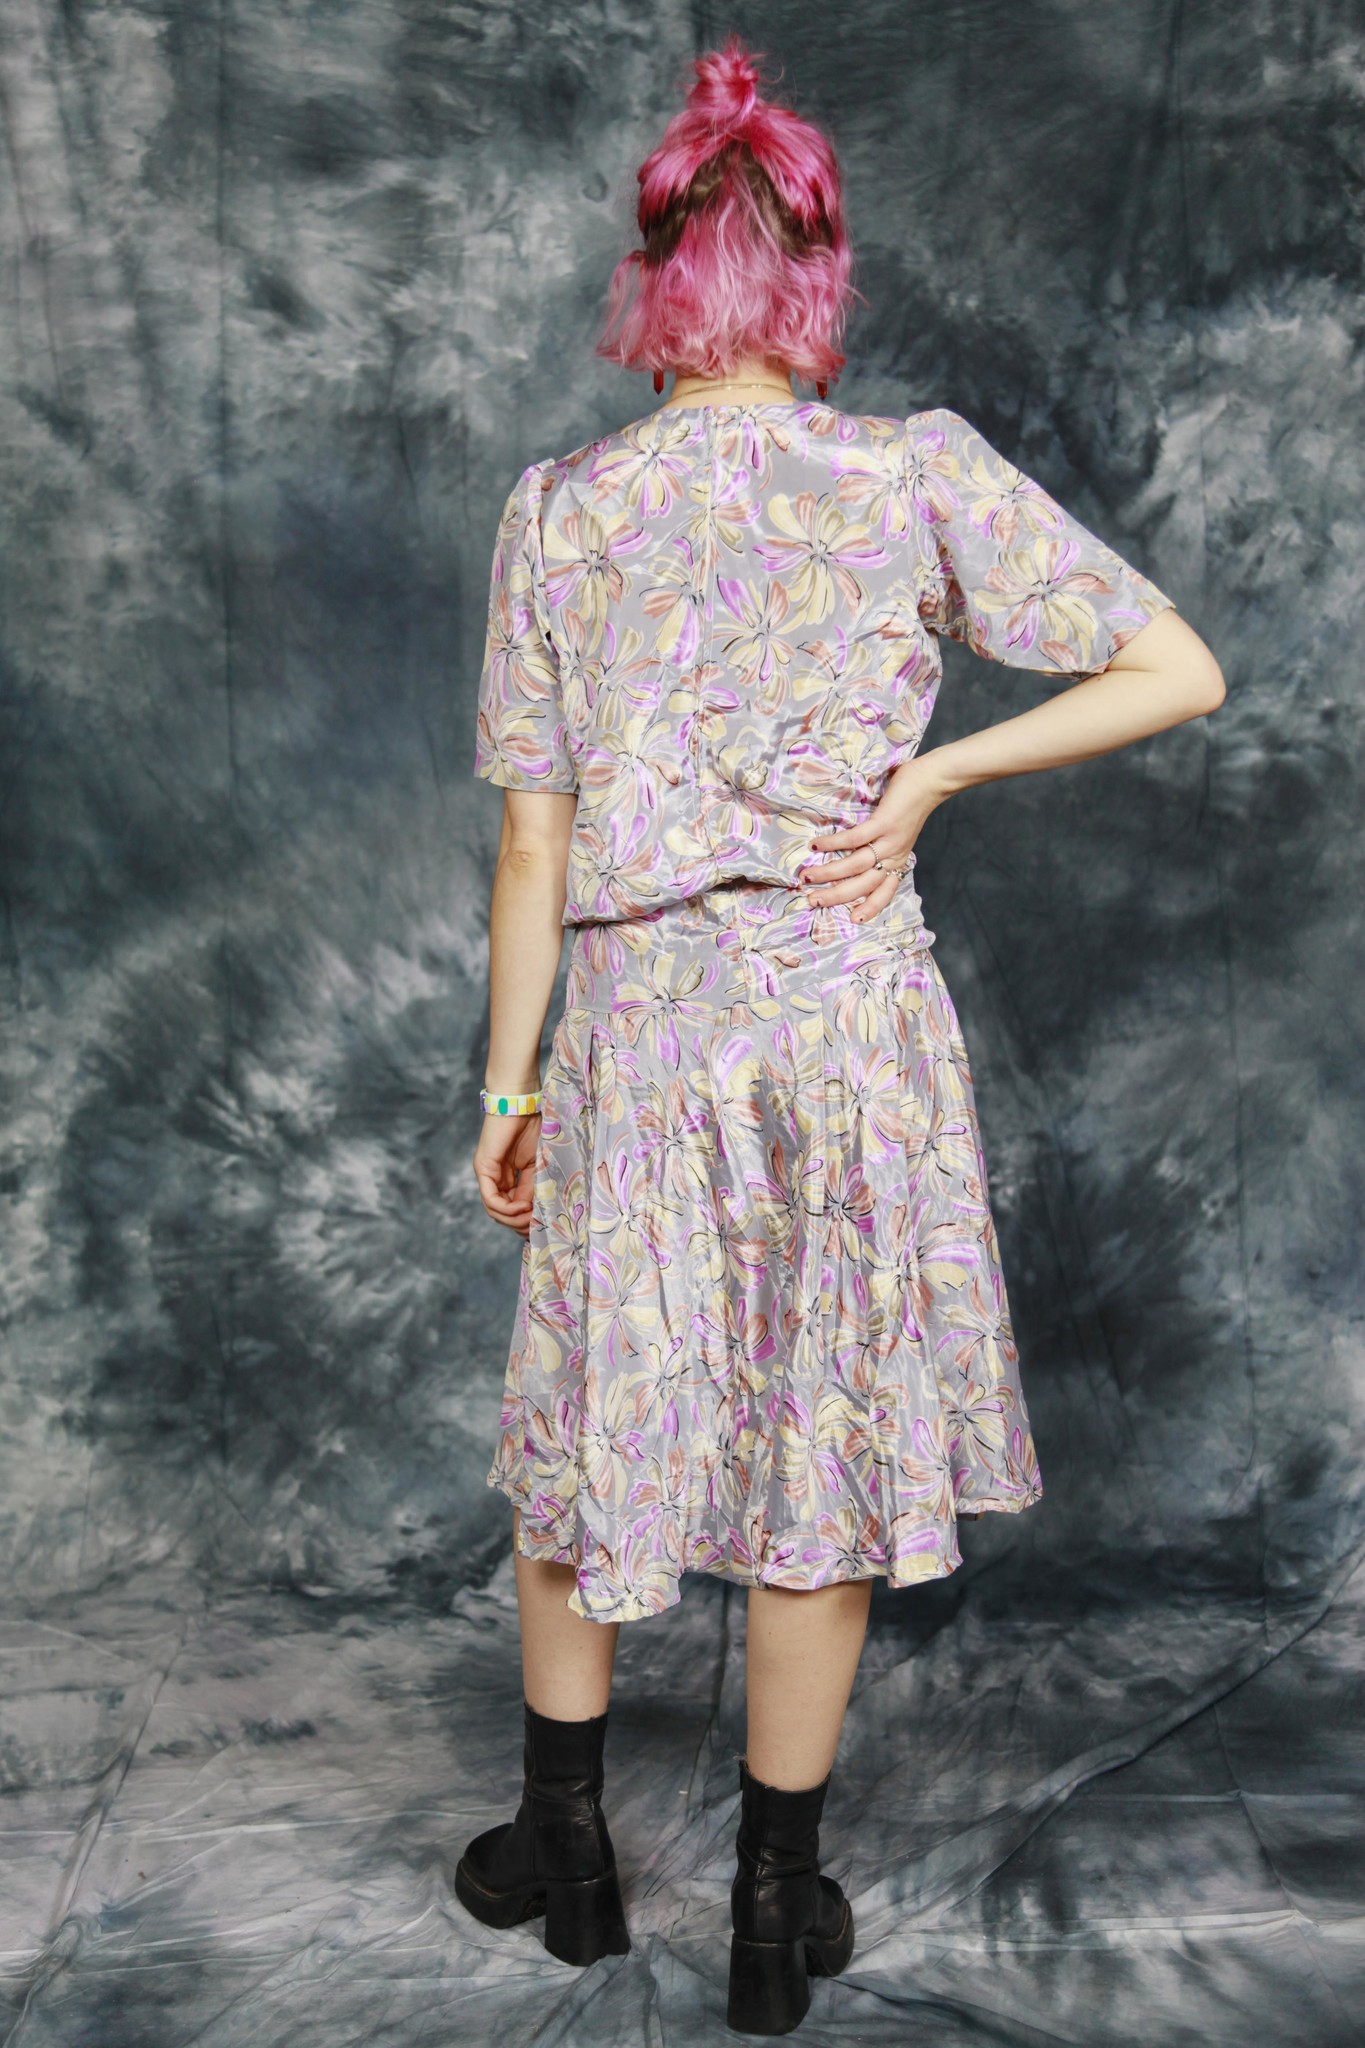 Classy floral dress with drop waist